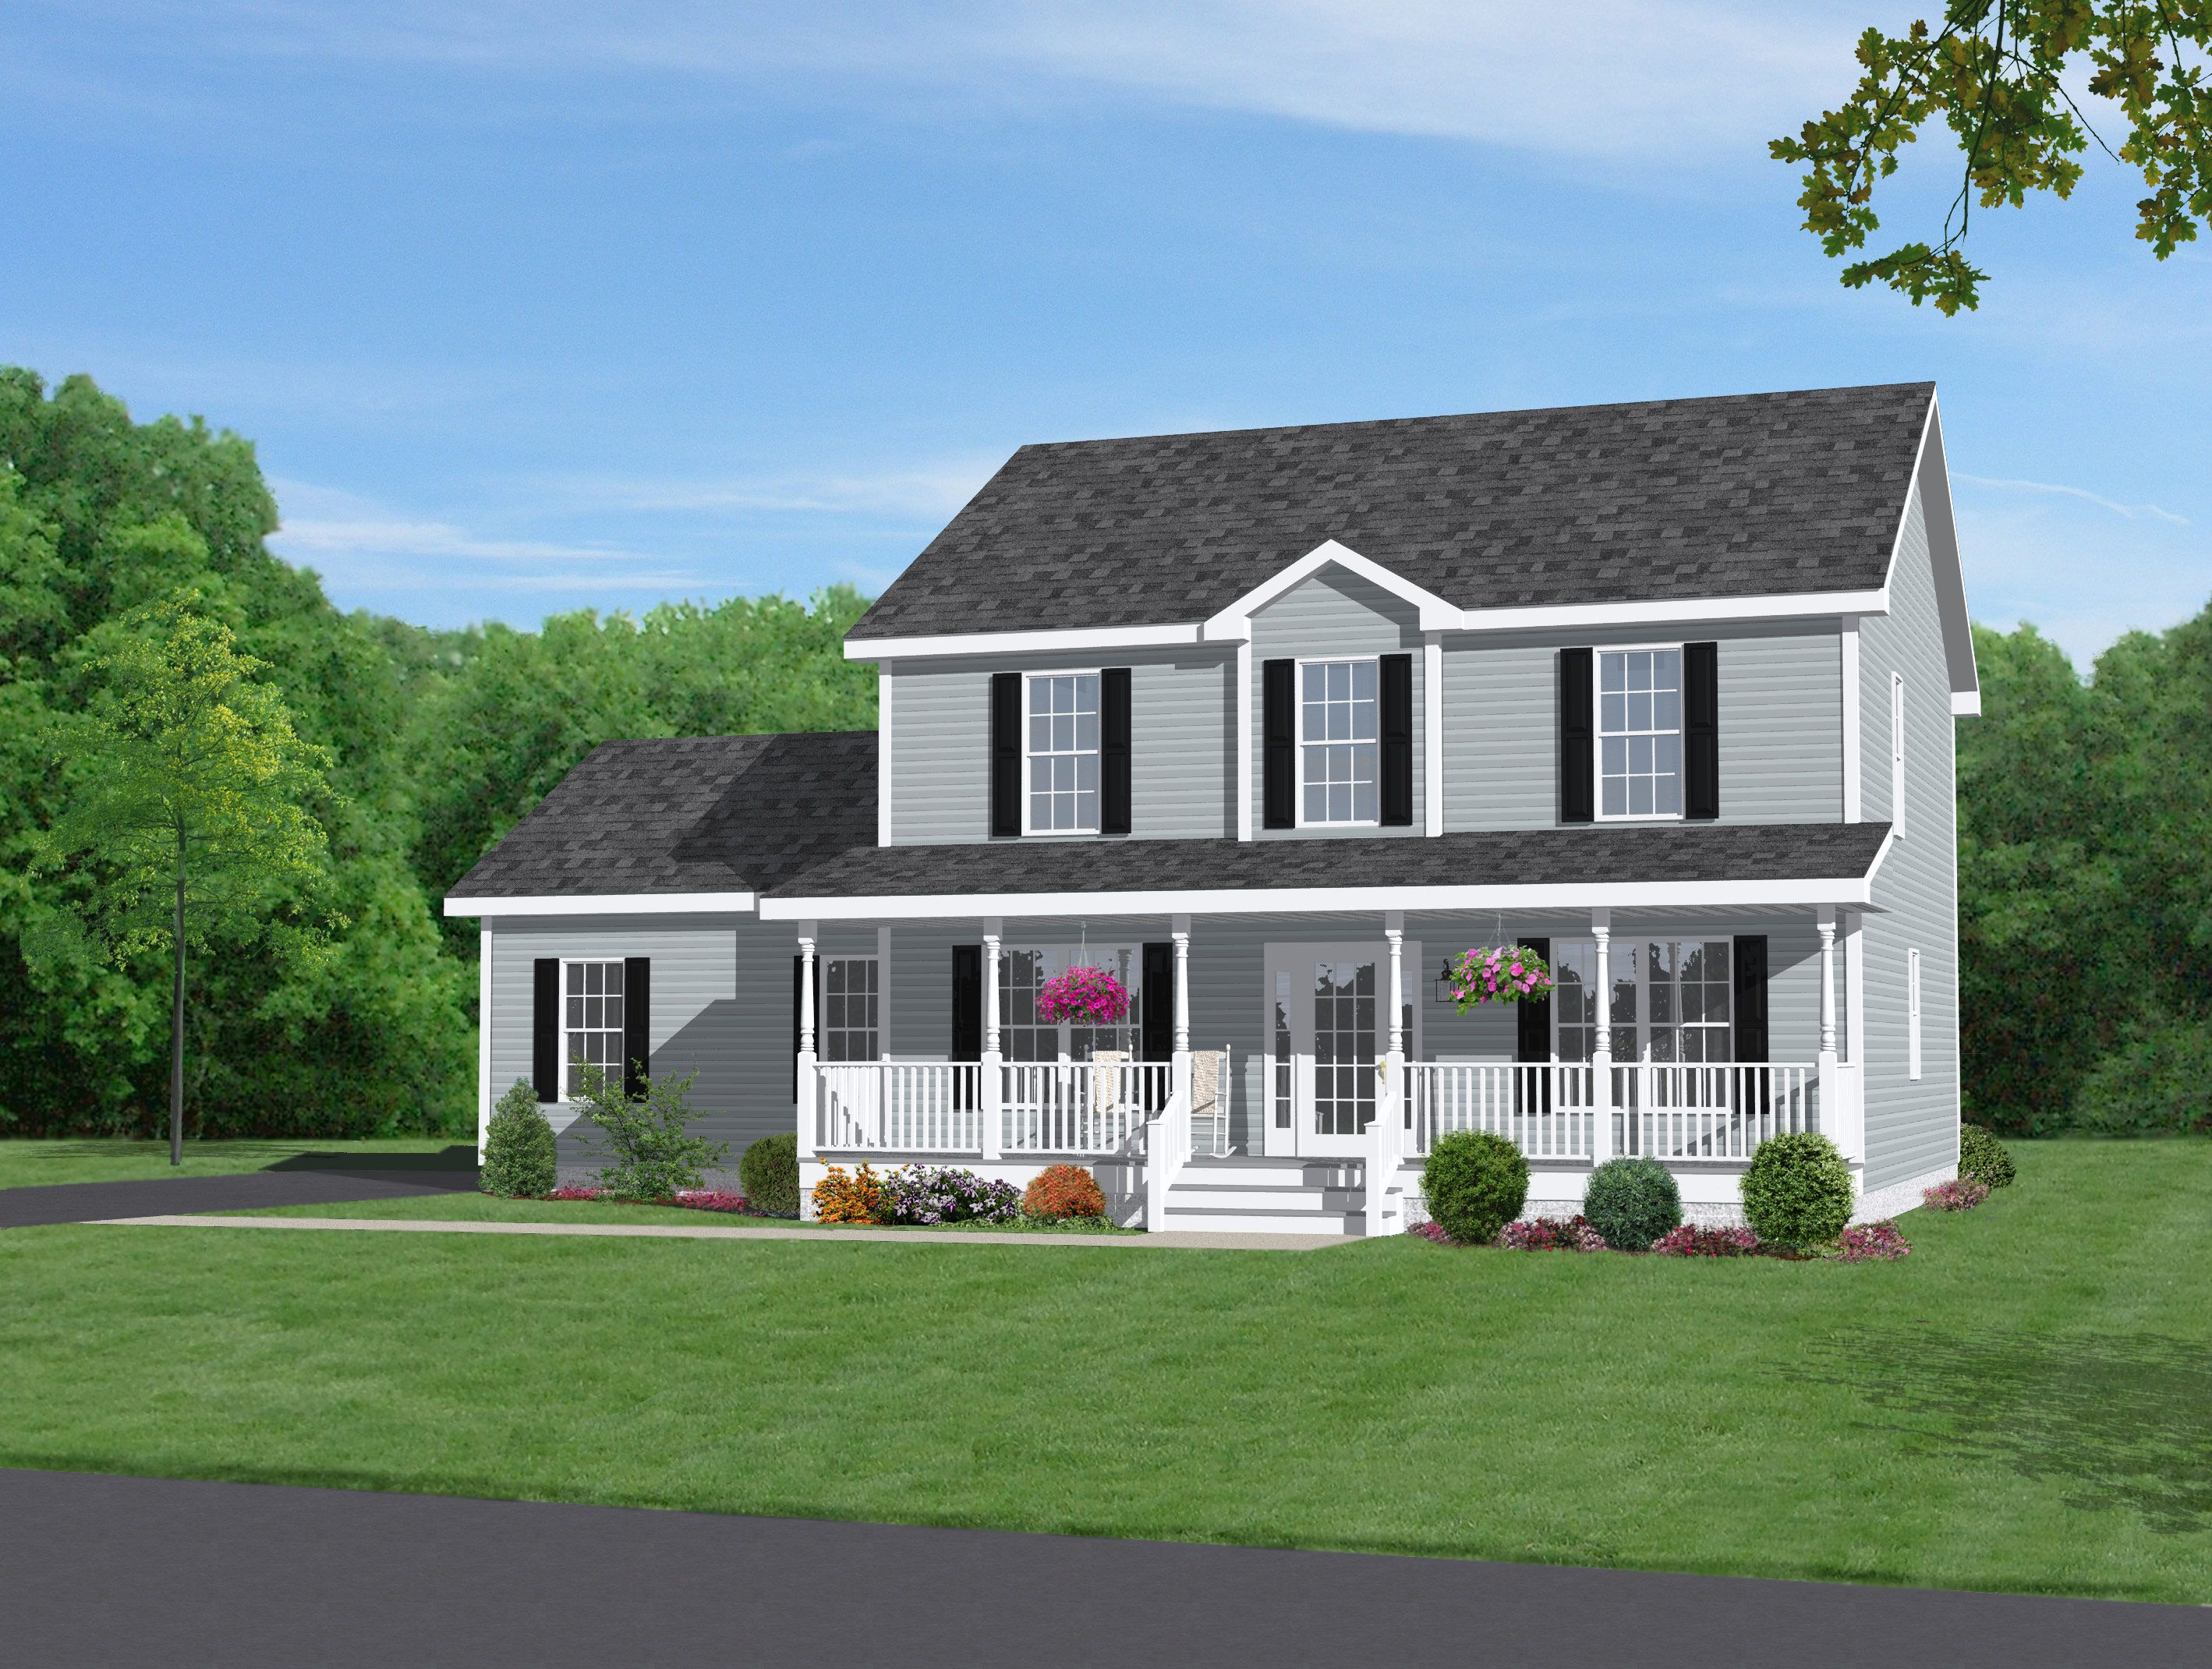 Two story home with beautiful front porch dream home for Big two story houses